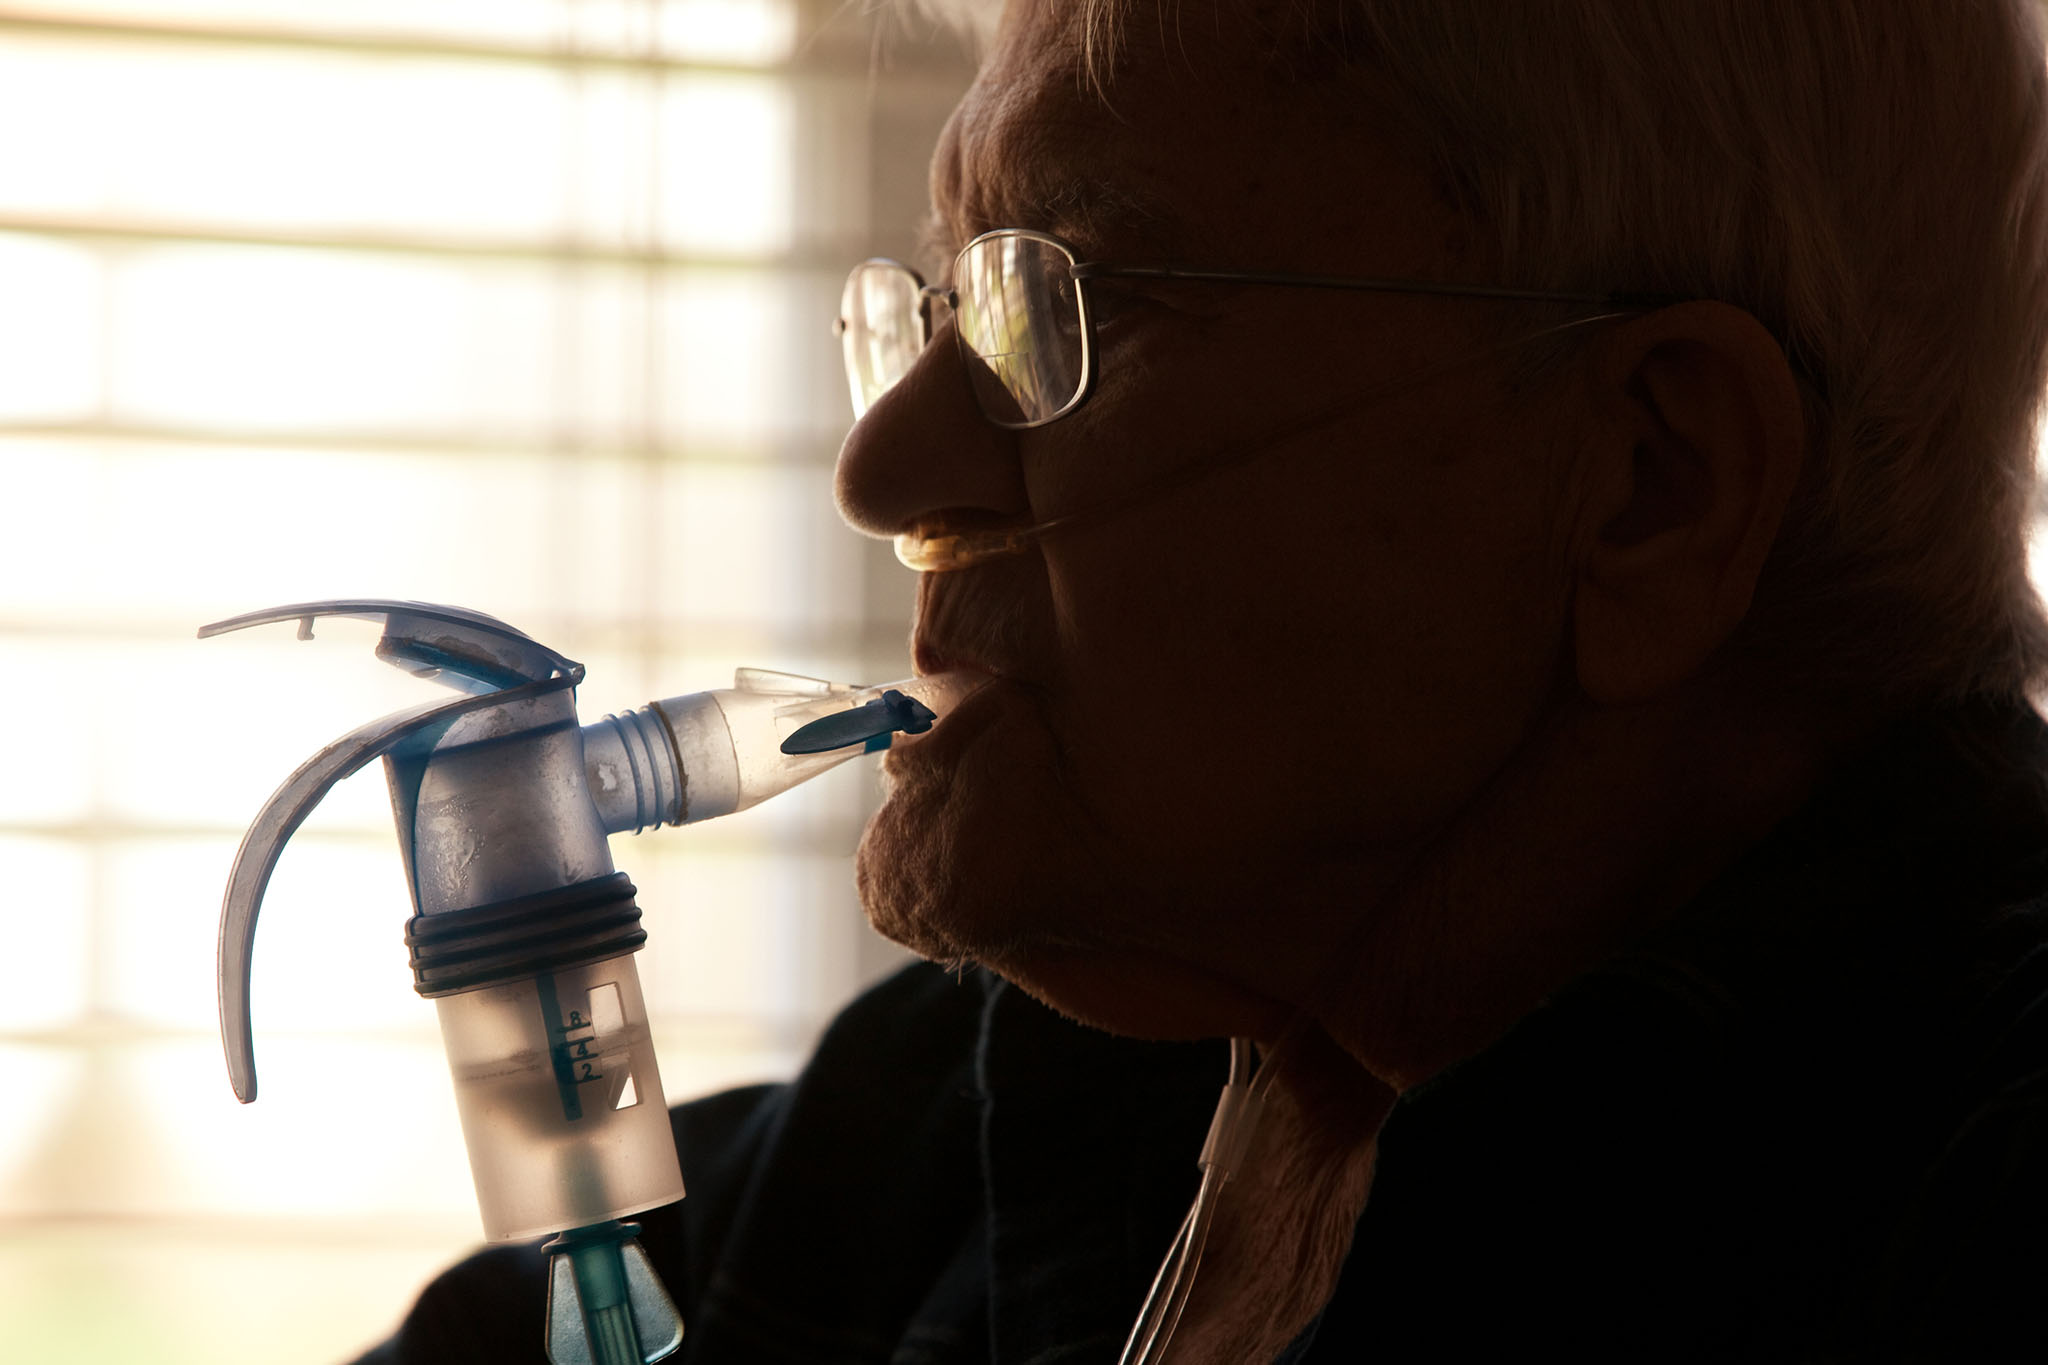 Elderly man using COPD inhaler